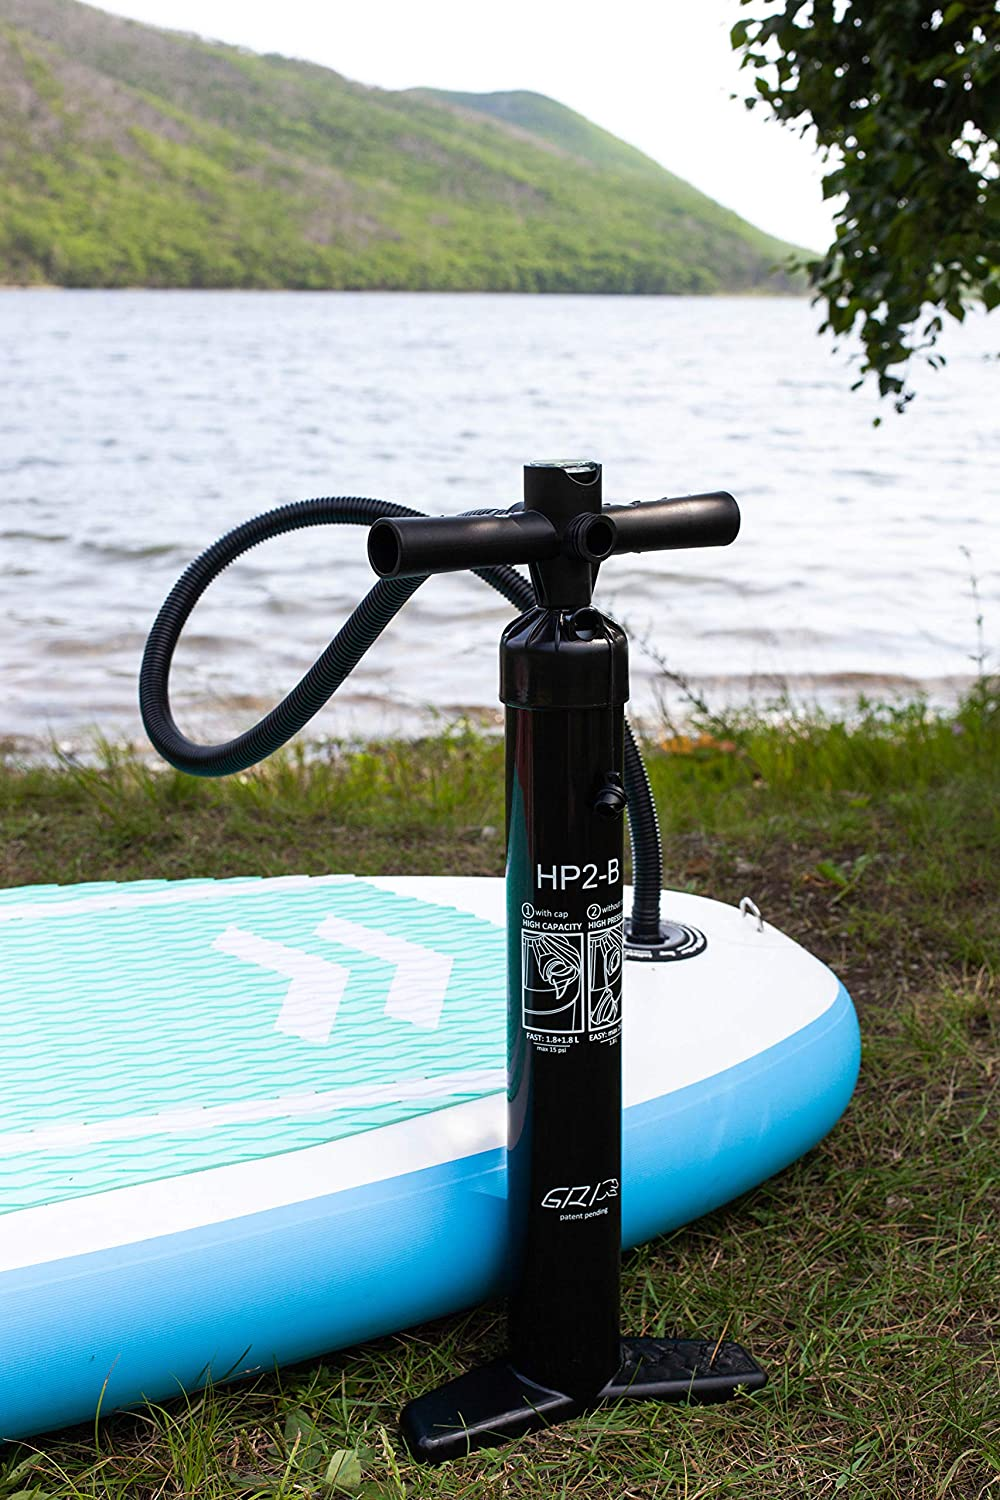 for Inflatable Stand Up Paddle Boards Hose and Air Valve Adapter JLF for 9 10 11 12 SUP Packages 20 psi Dual Action Hand Pump with Pressure Gauge 15 psi Inflate 12 psi